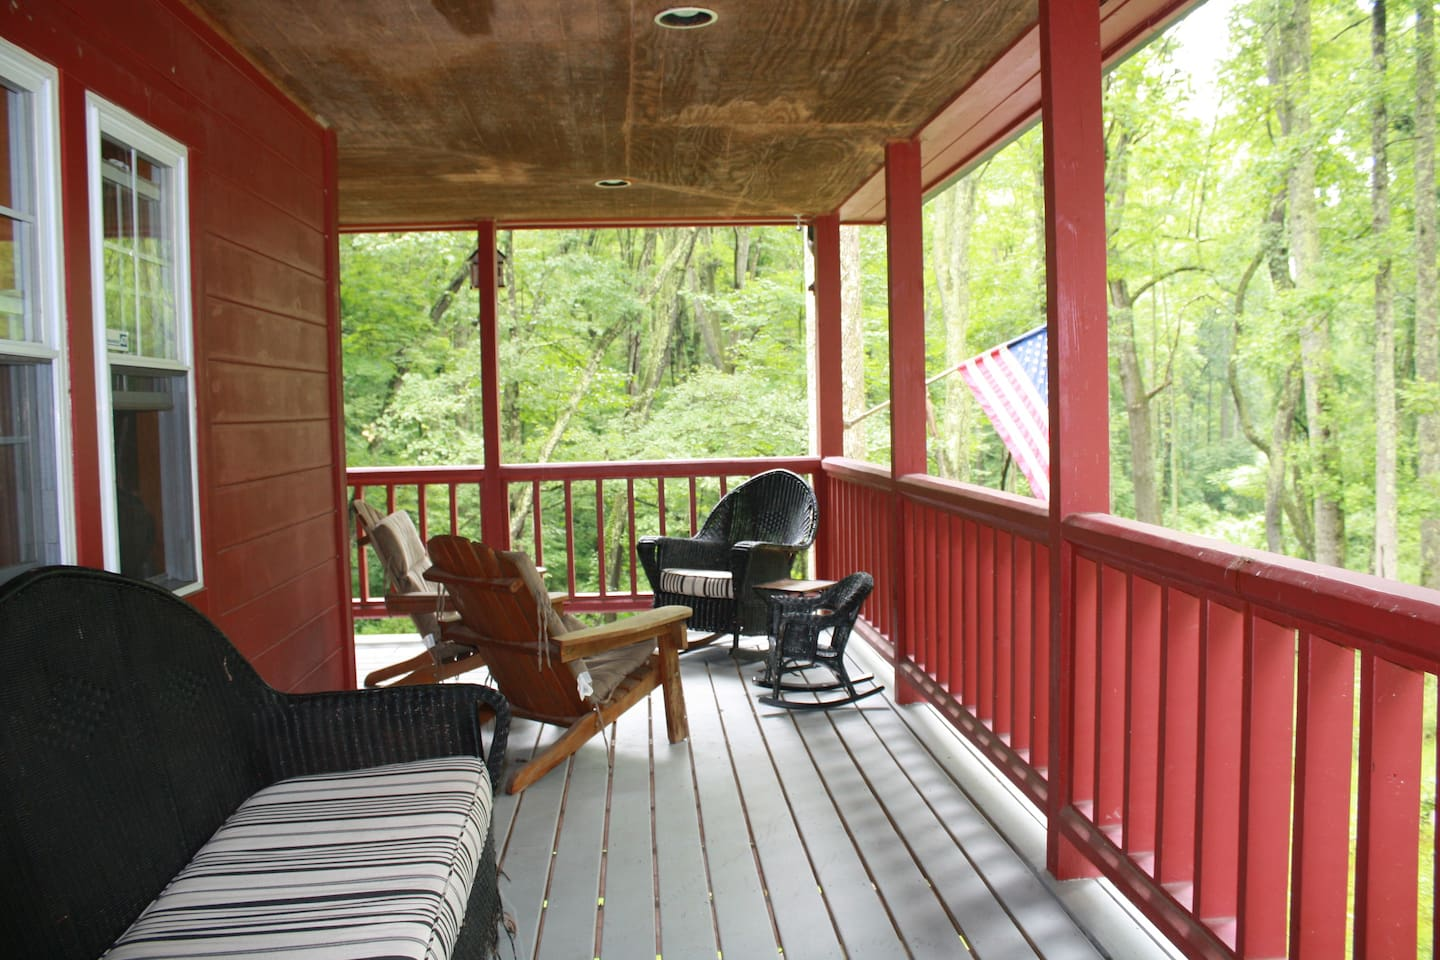 Enjoy the great outdoors from the comforts of the Red Roost and its expansive porch.